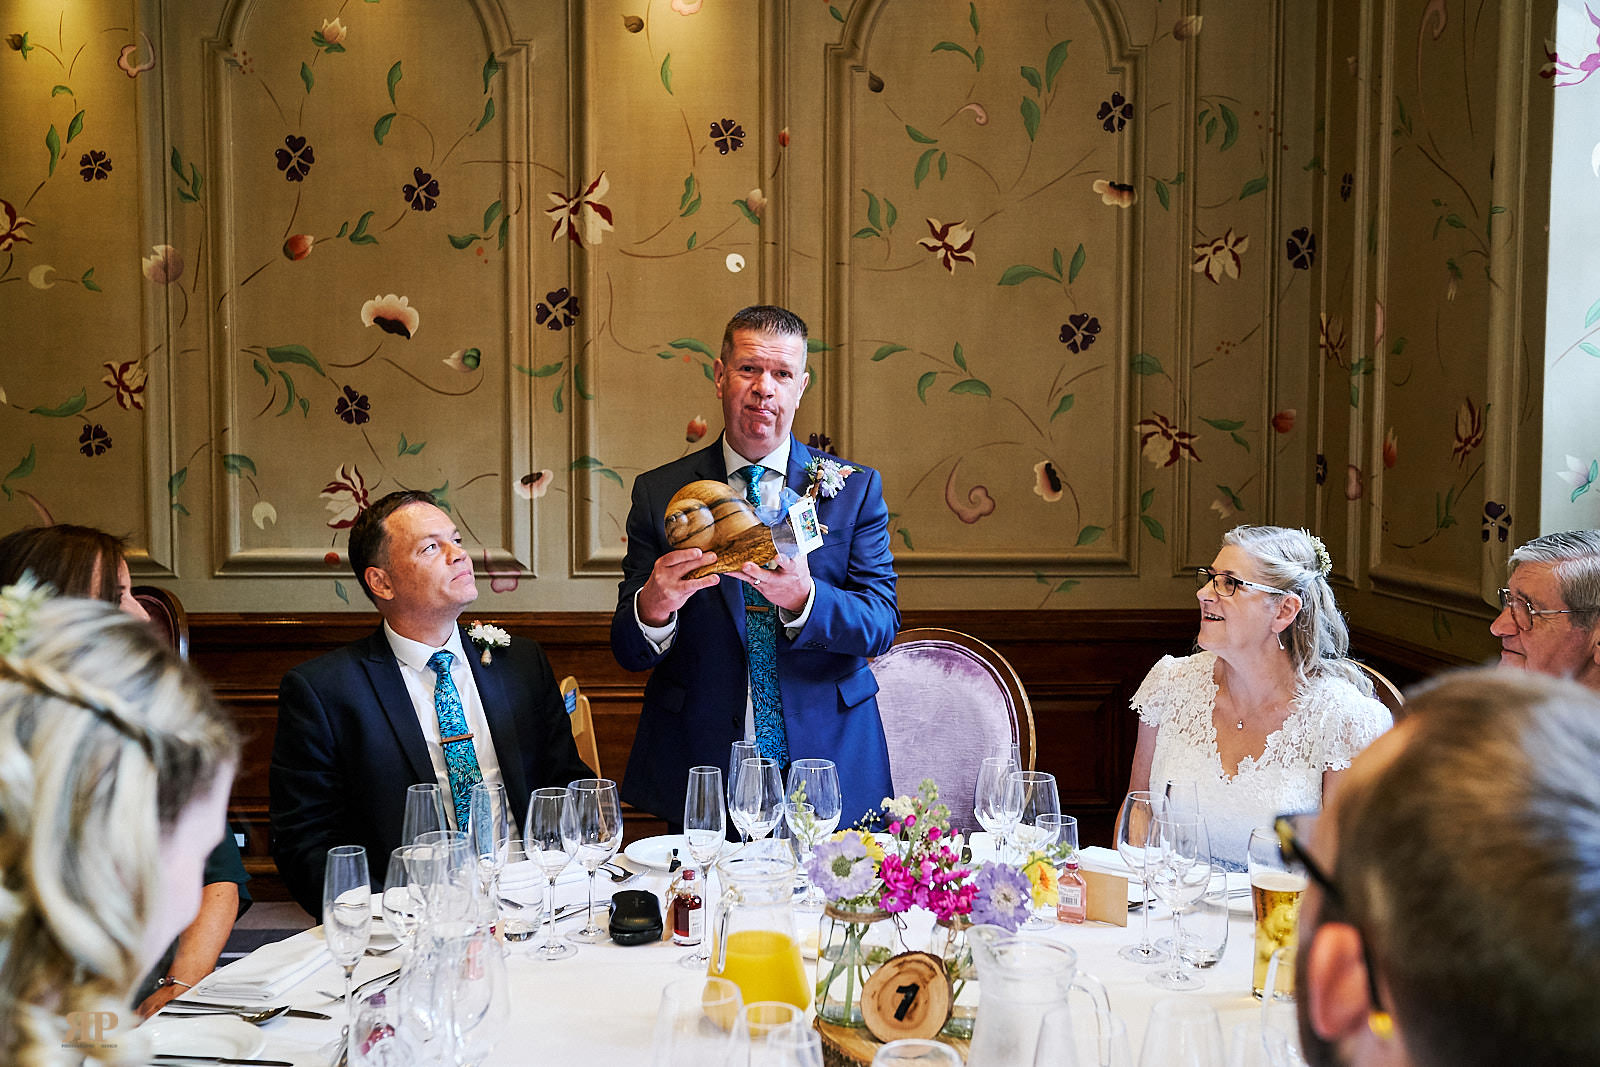 Helen Grant Wedding The Forbury Hotel at The Forbury Hotel Reading on 25 May 2019.